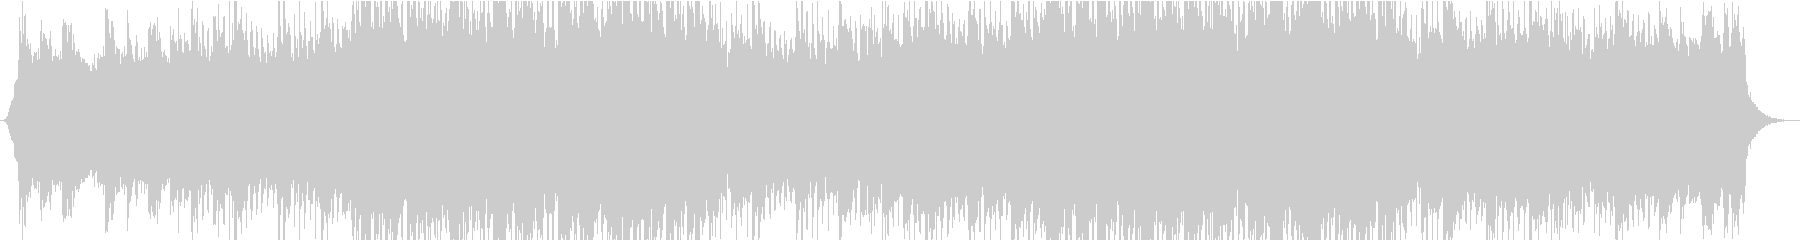 BGM inspired by overseas wide shows's unreproduced waveform